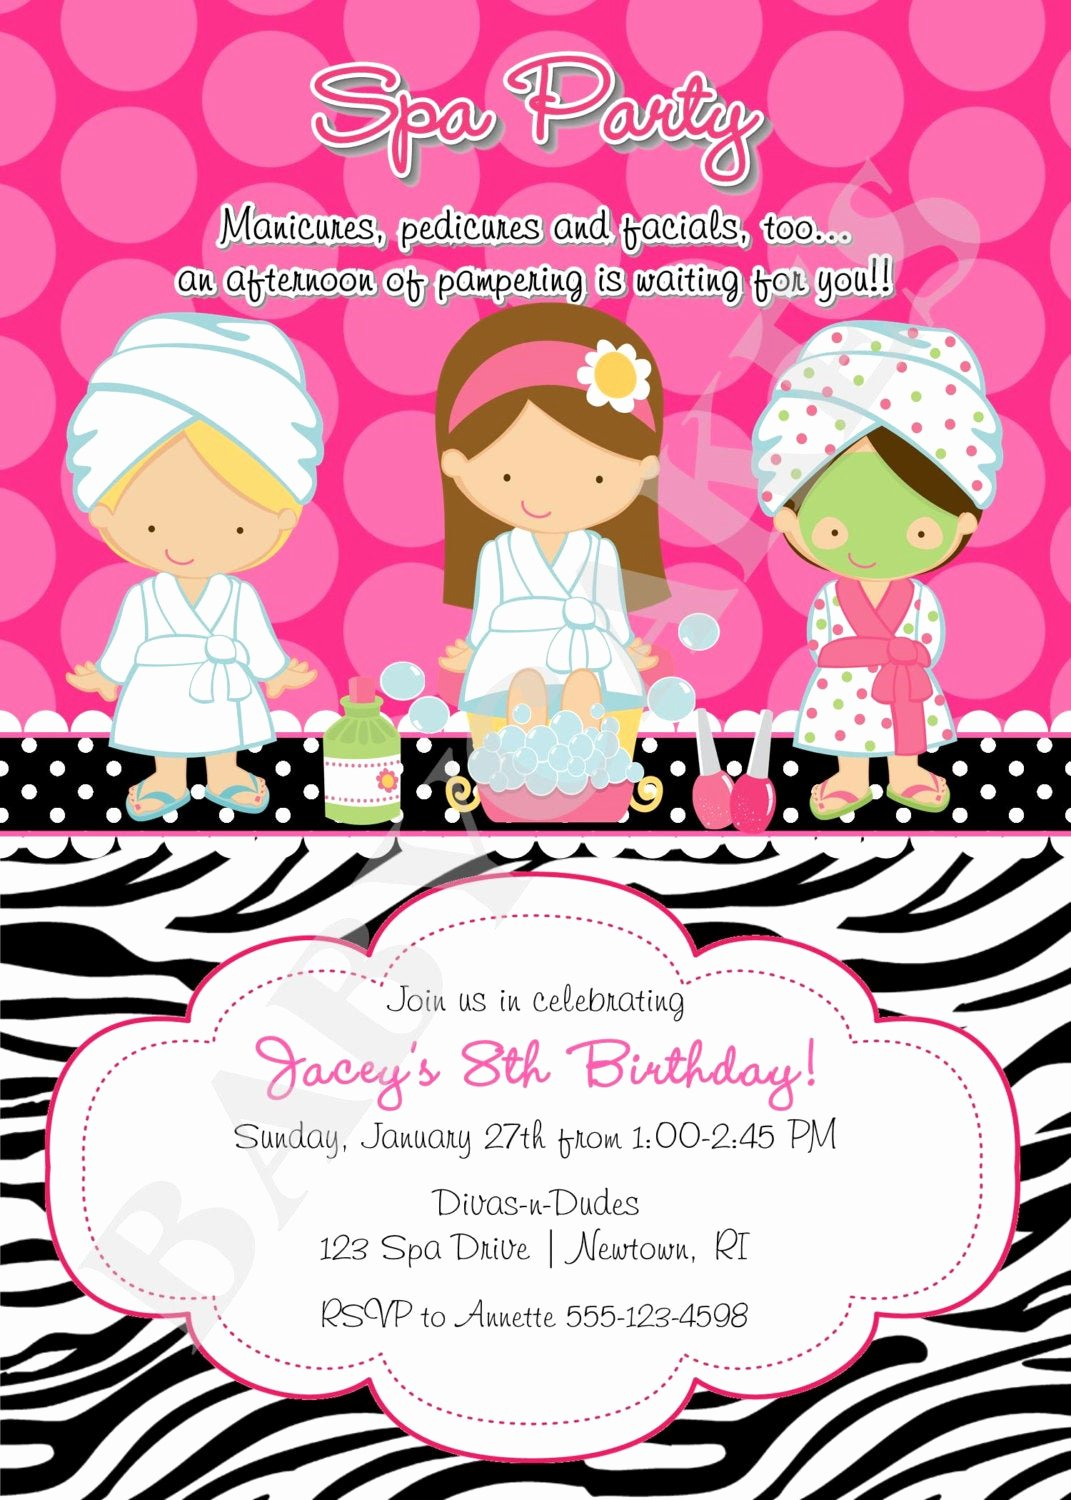 Free Spa Party Invitations Lovely Spa Party Birthday Invitation Invite Spa Birthday Party Choose